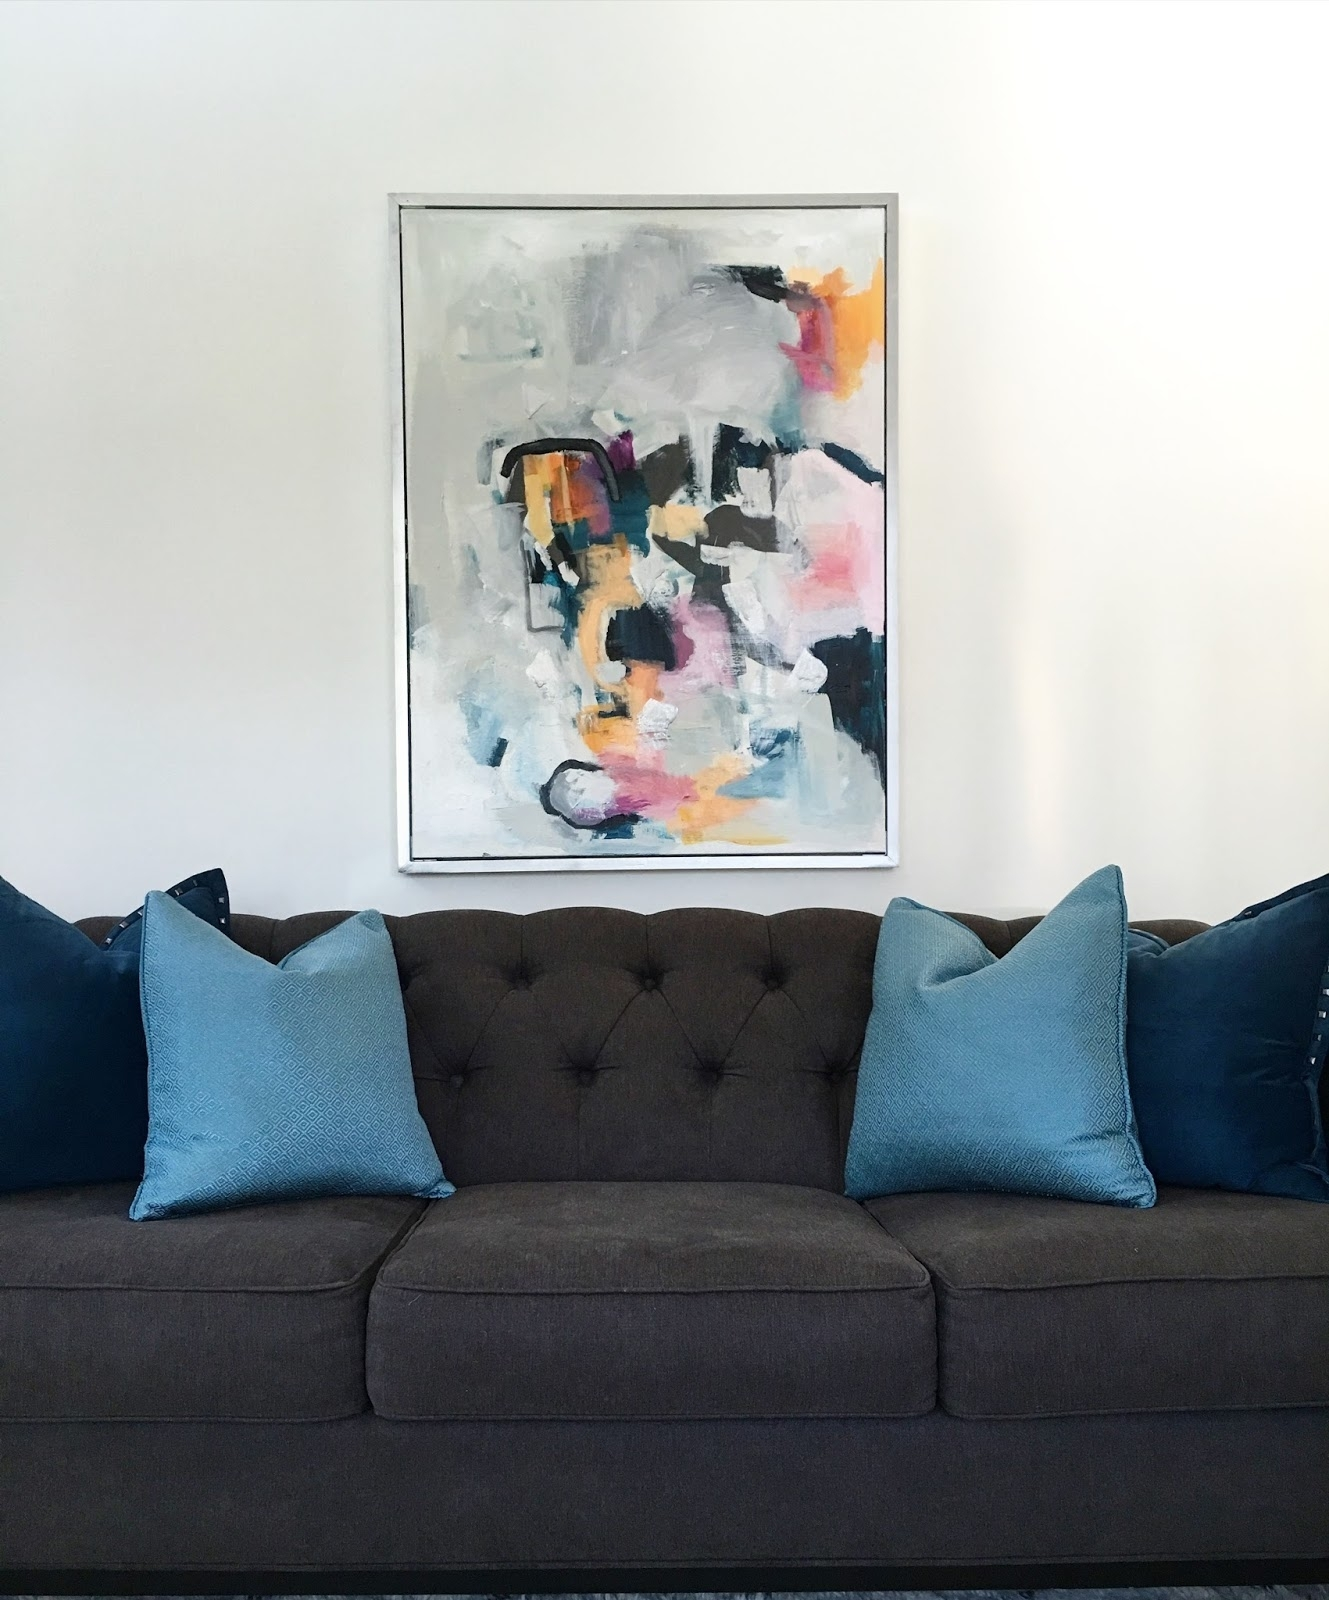 Livelovediy: Diy Abstract Wall Art Regarding Latest Diy Abstract Wall Art (View 17 of 20)